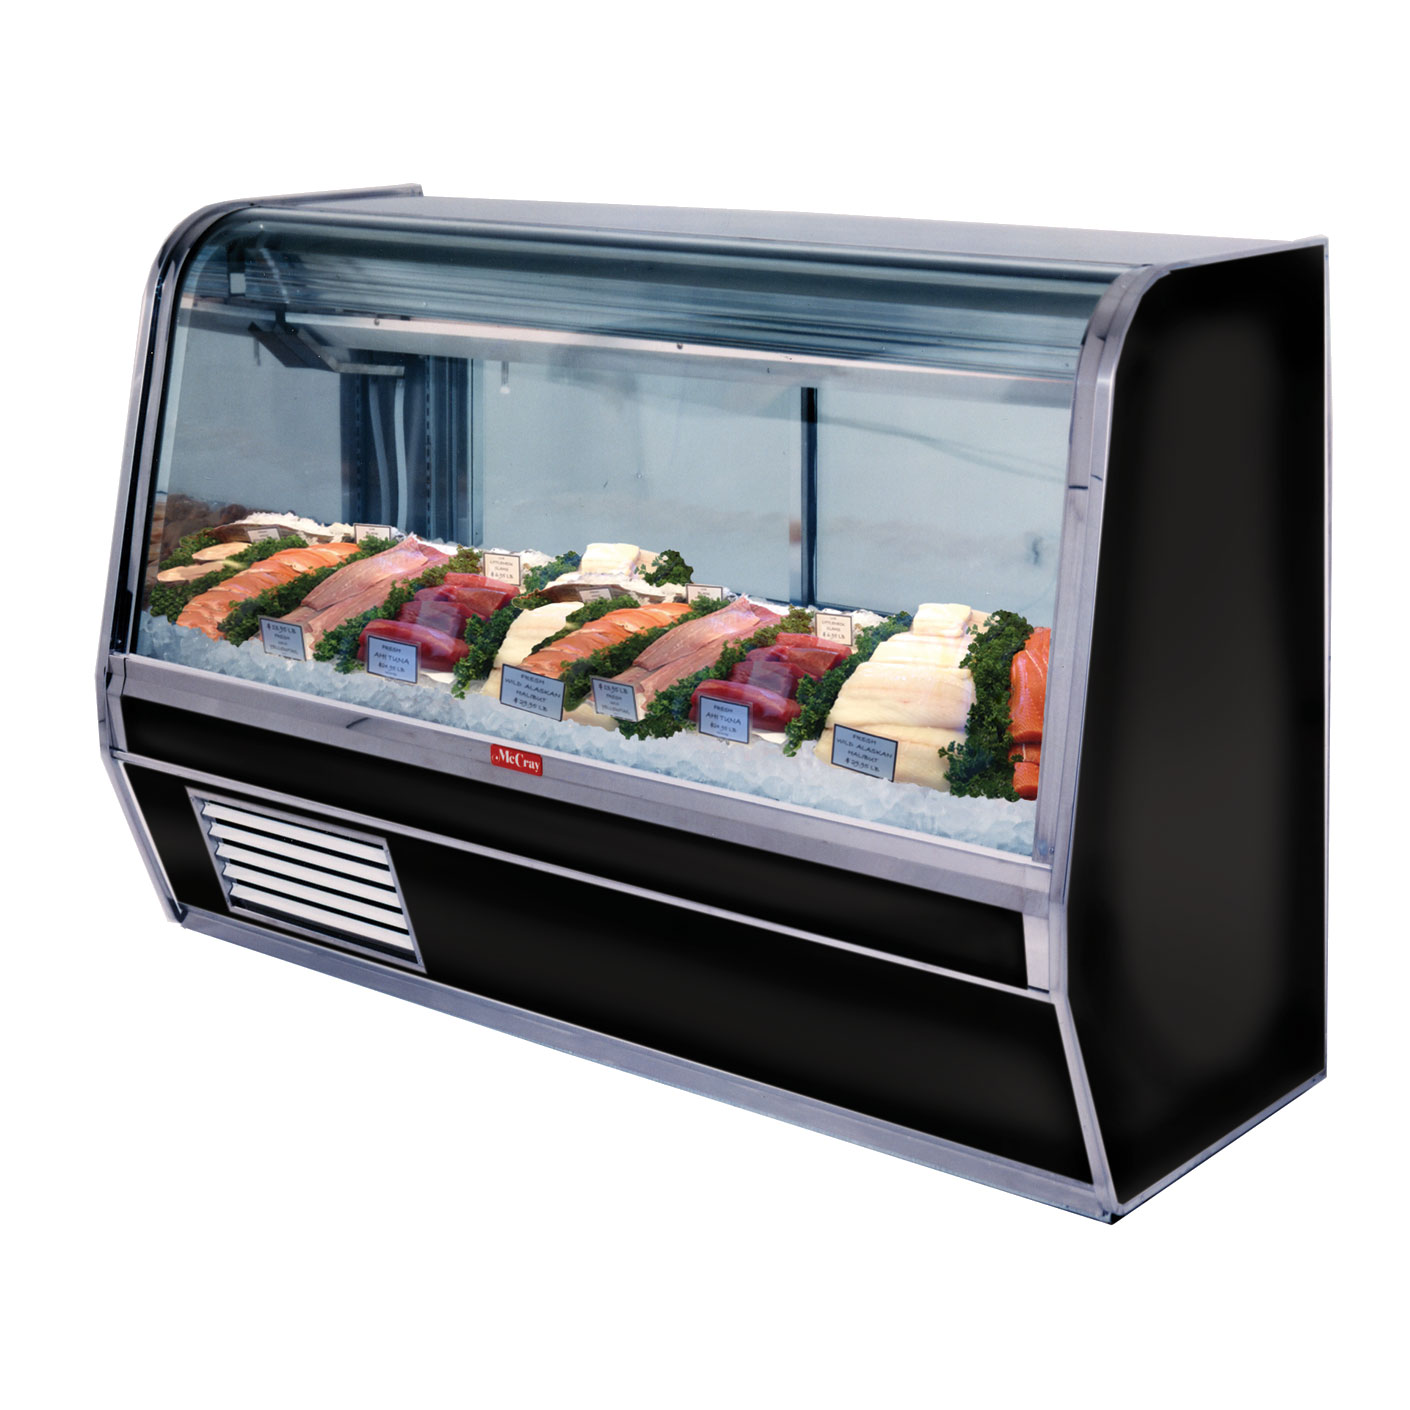 Howard-McCray R-CFS32E-6C-S-LED display case, deli seafood / poultry